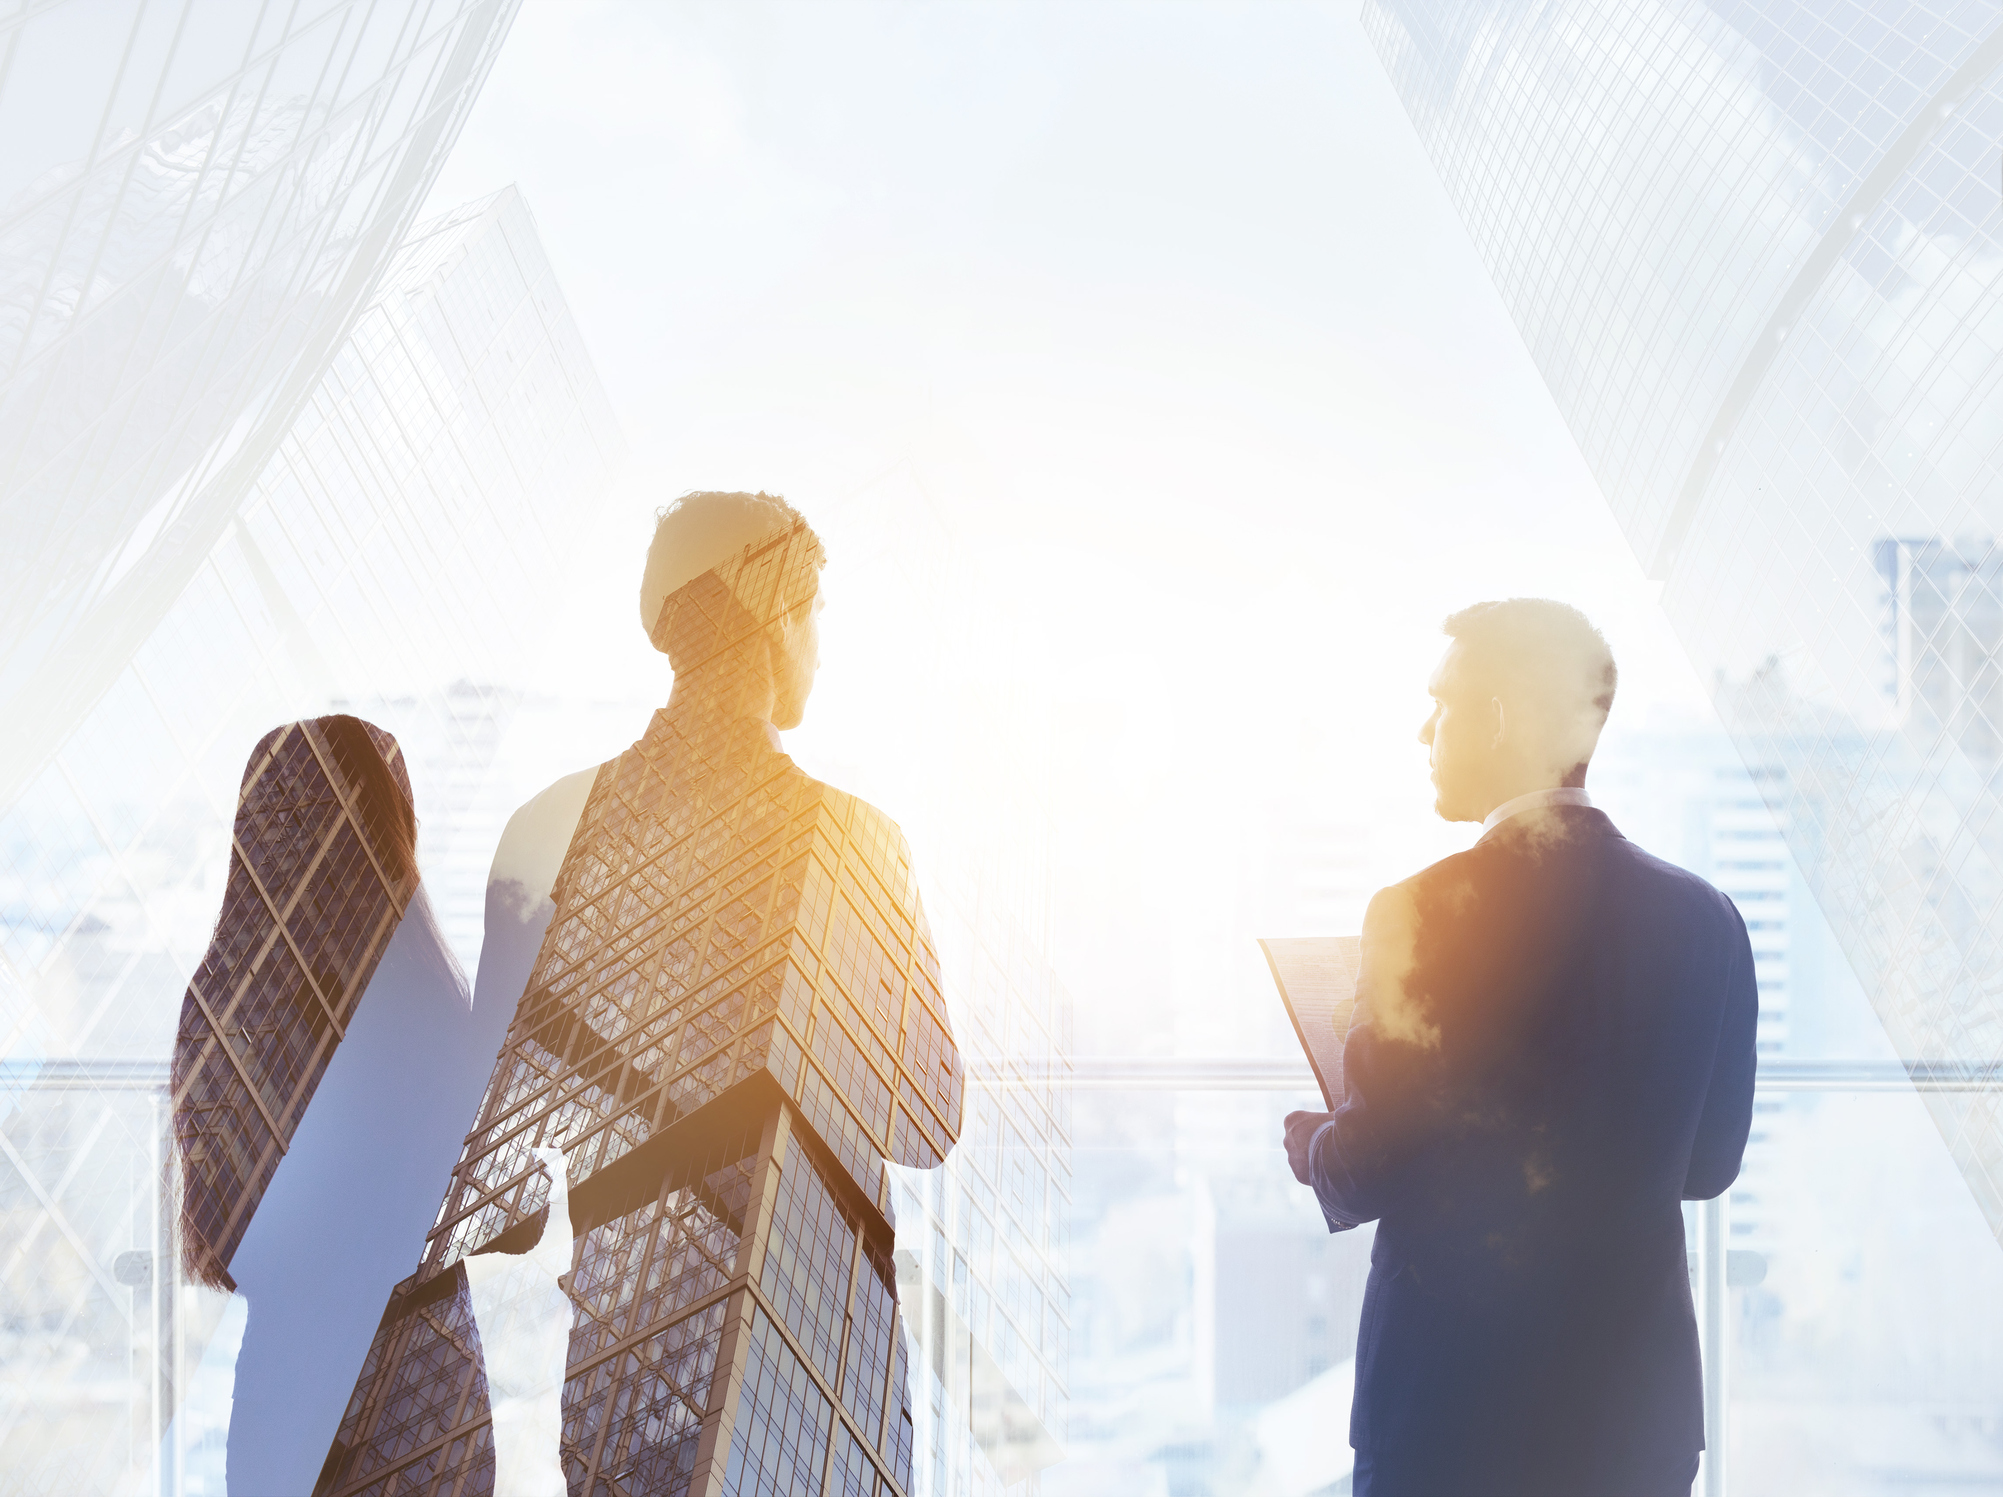 Abstract business concept with three silhouettes of businessmen double exposed on modern skyscrapers backdrop.